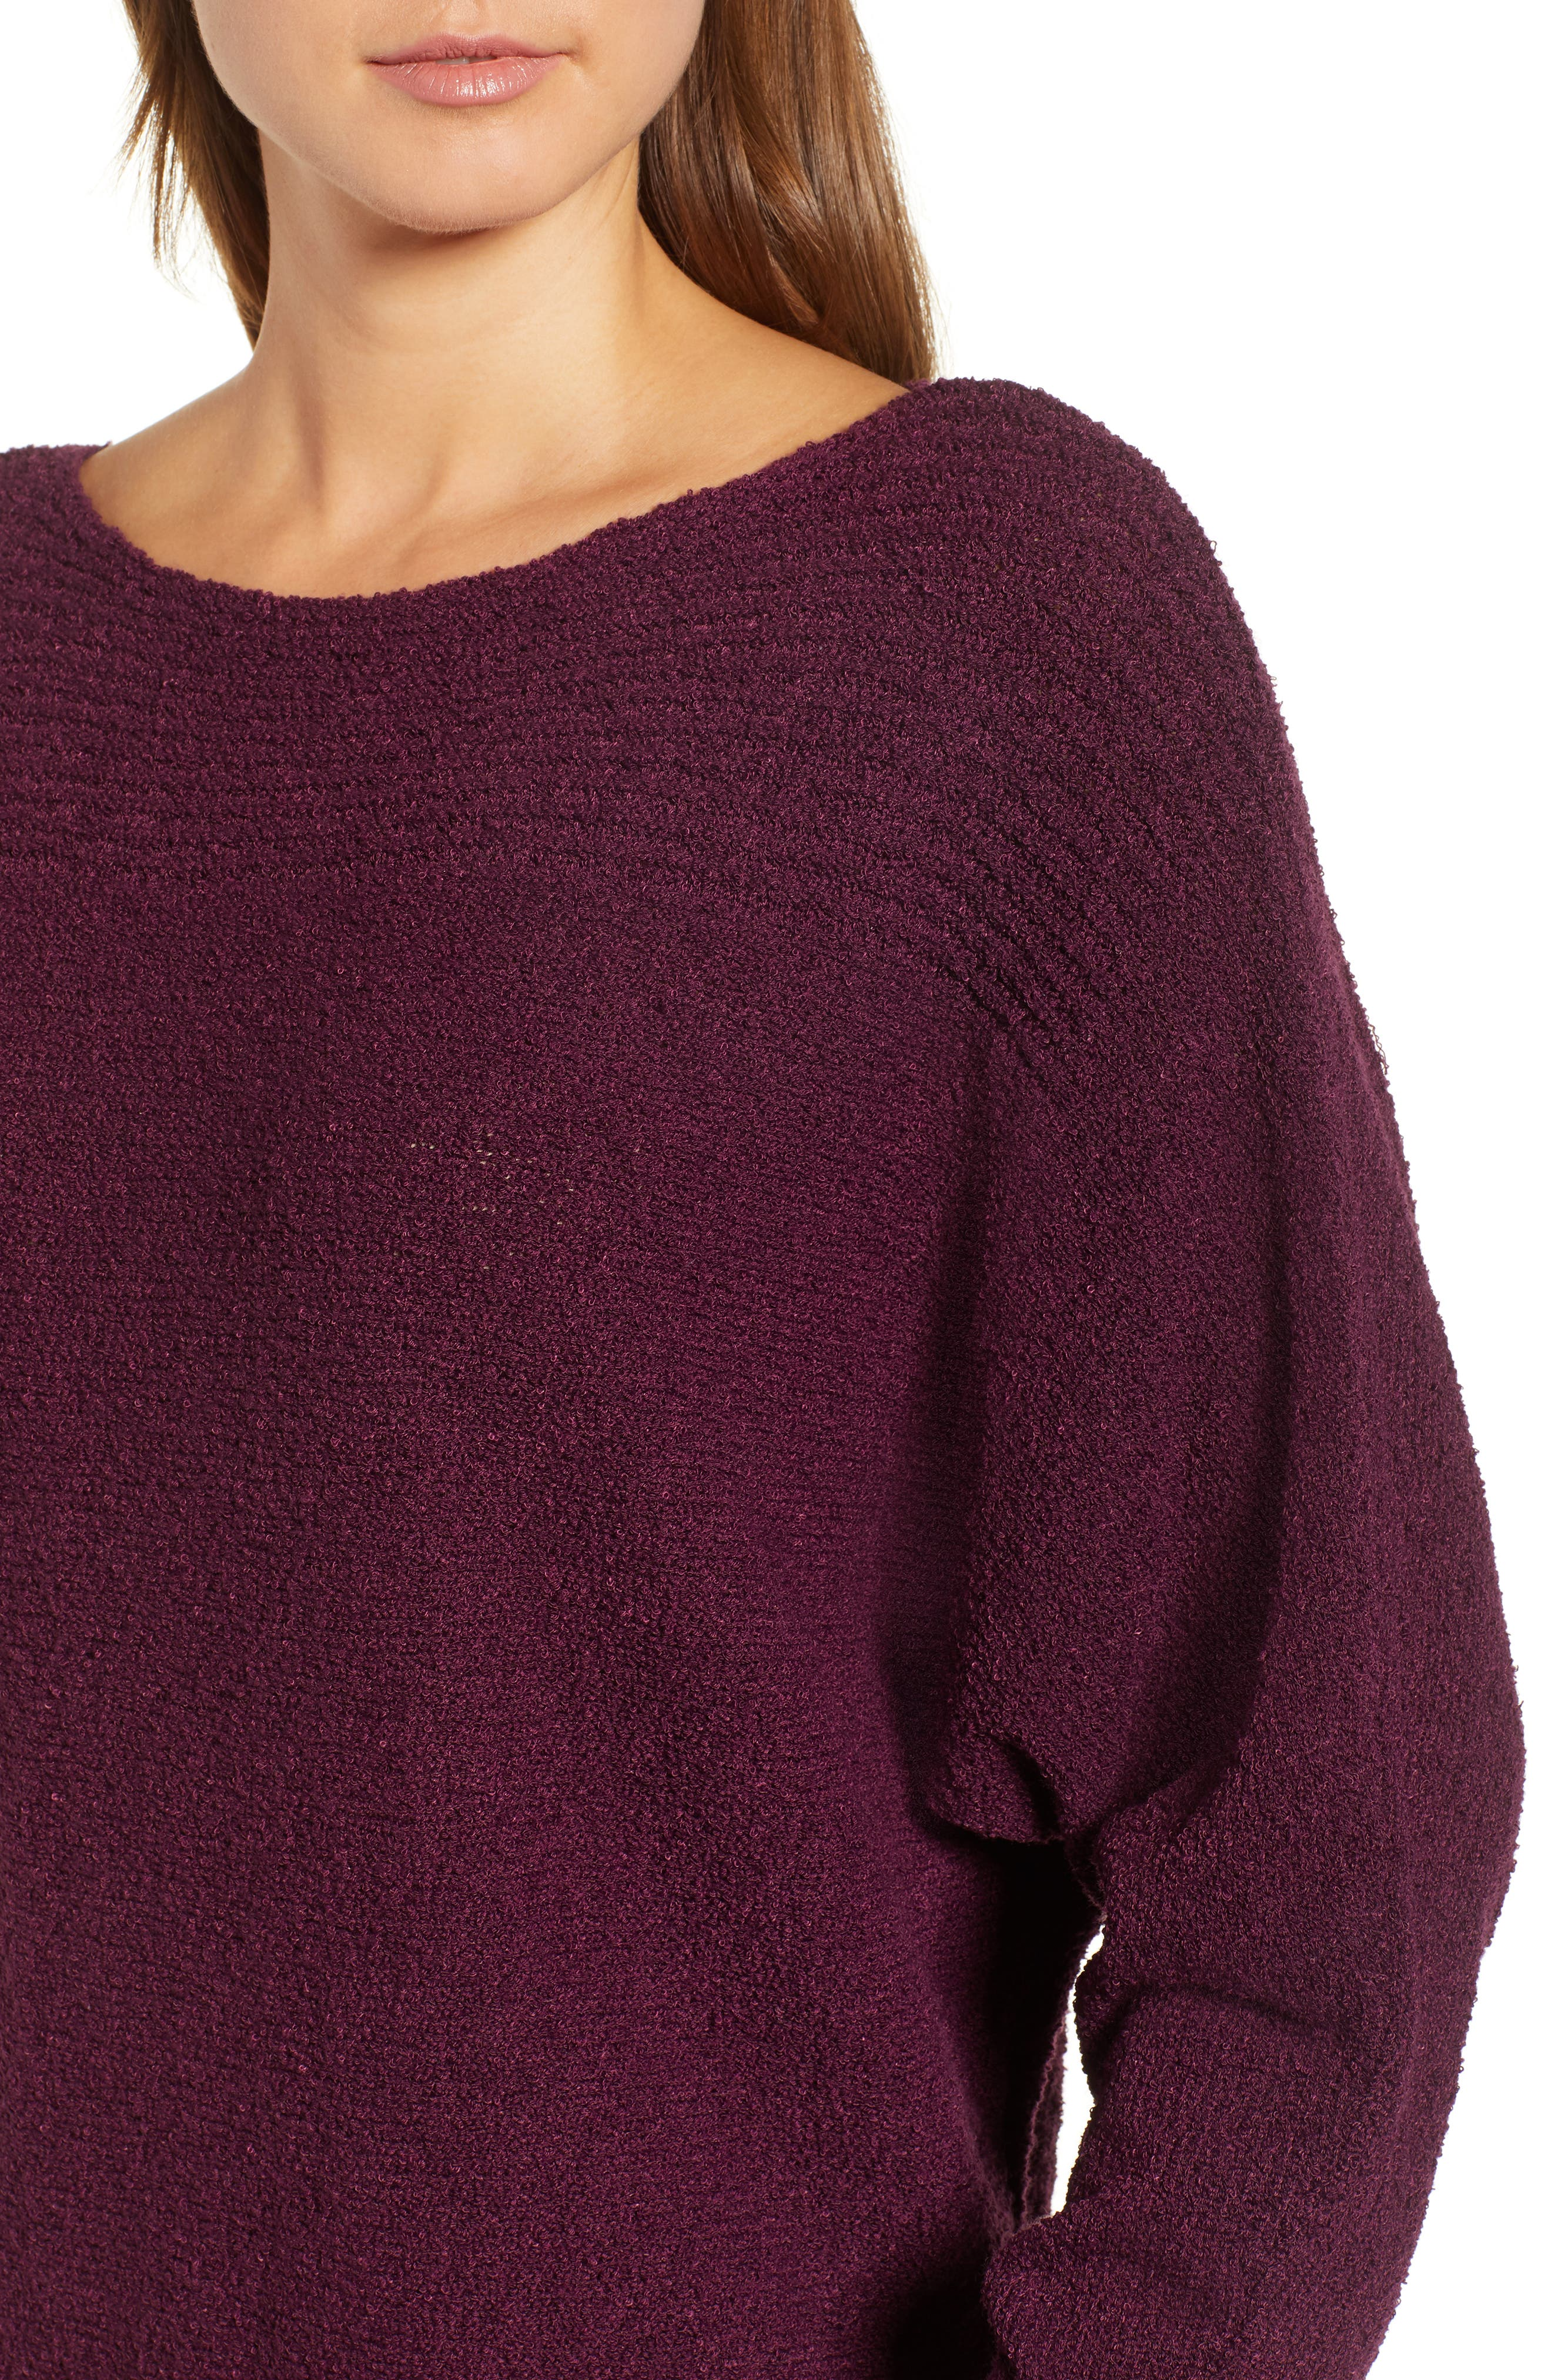 Calson<sup>®</sup> Dolman Sleeve Sweater,                             Alternate thumbnail 18, color,